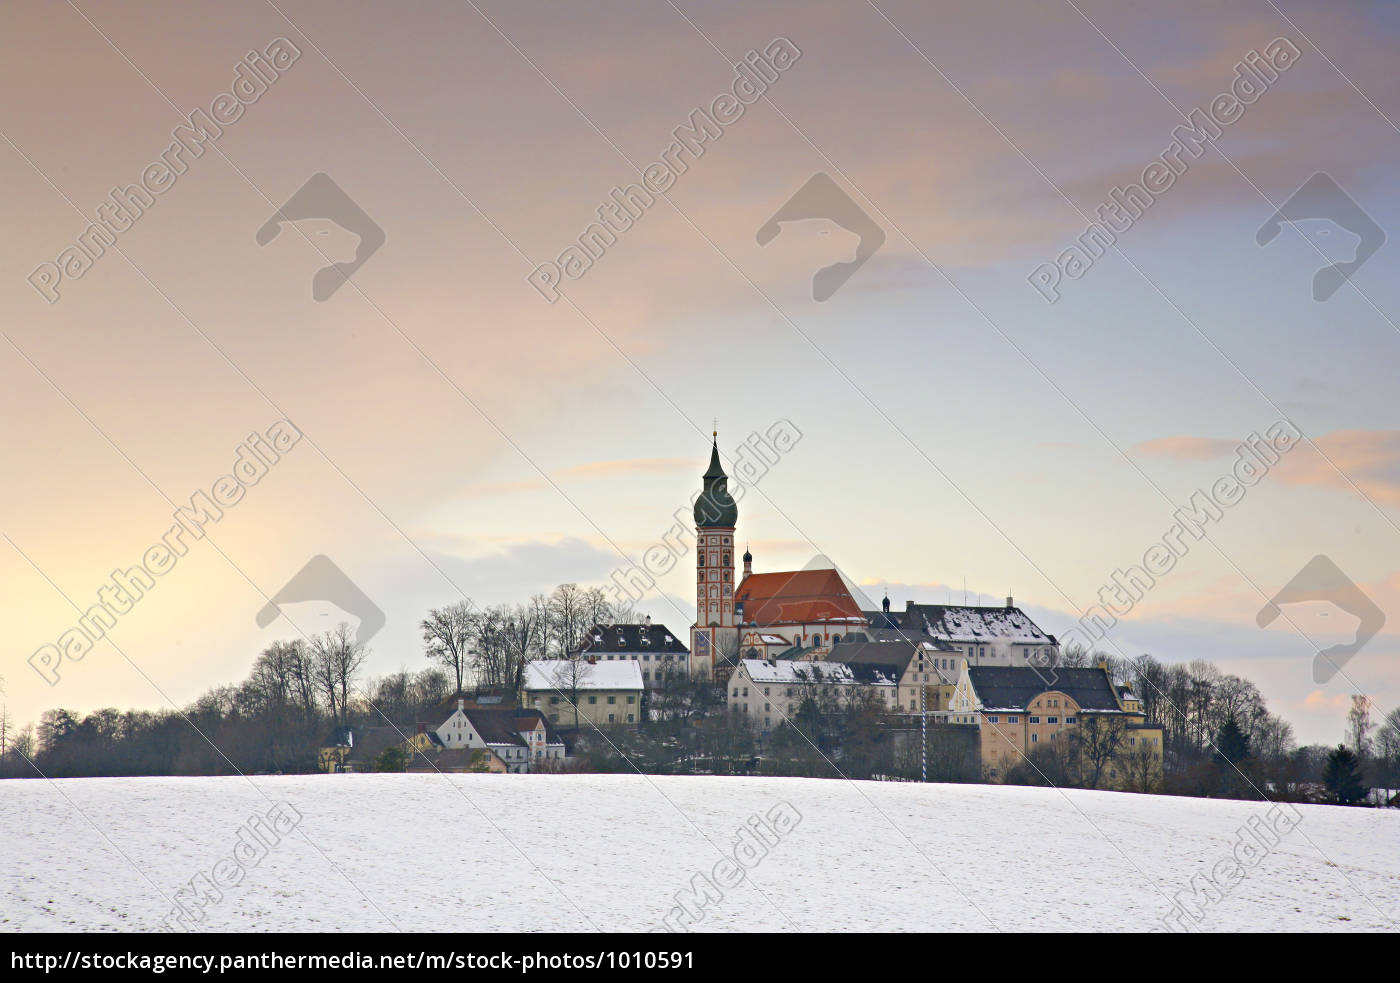 andechs - 1010591